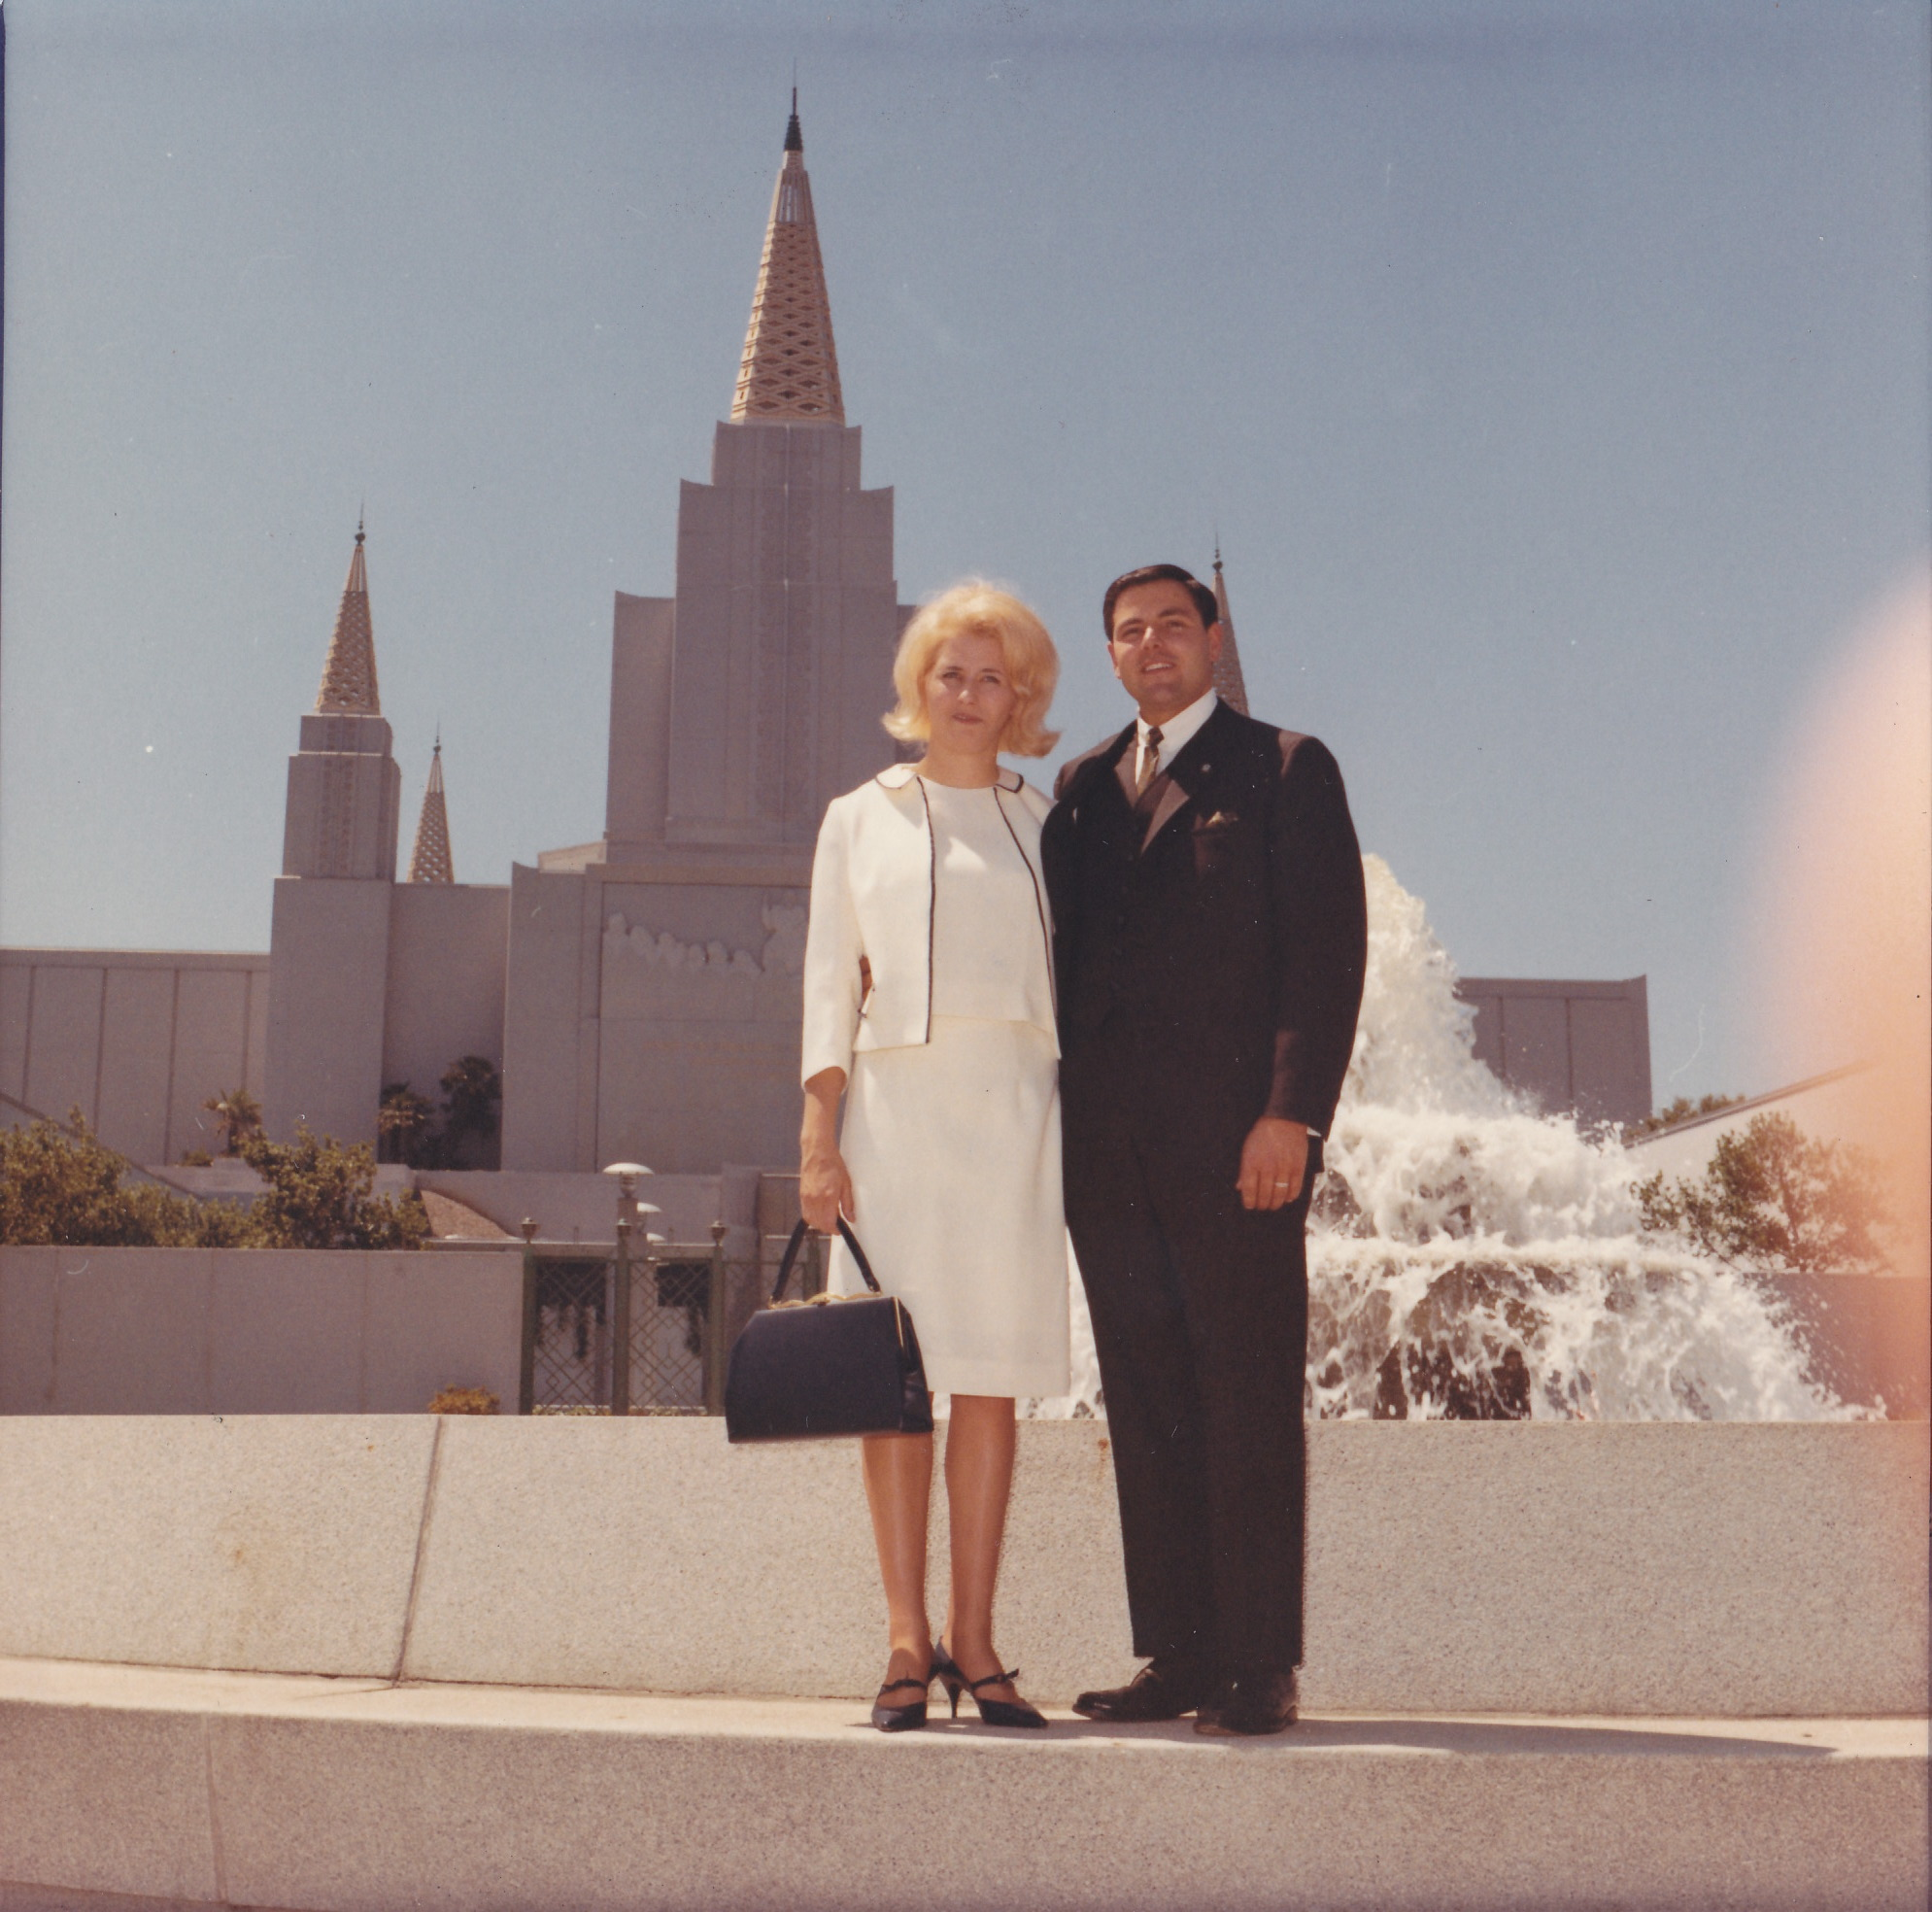 Lisbeth Pettersson with her husband Tom Slater on their wedding day, June 25, 1966. They were married in the Oakland California Temple.